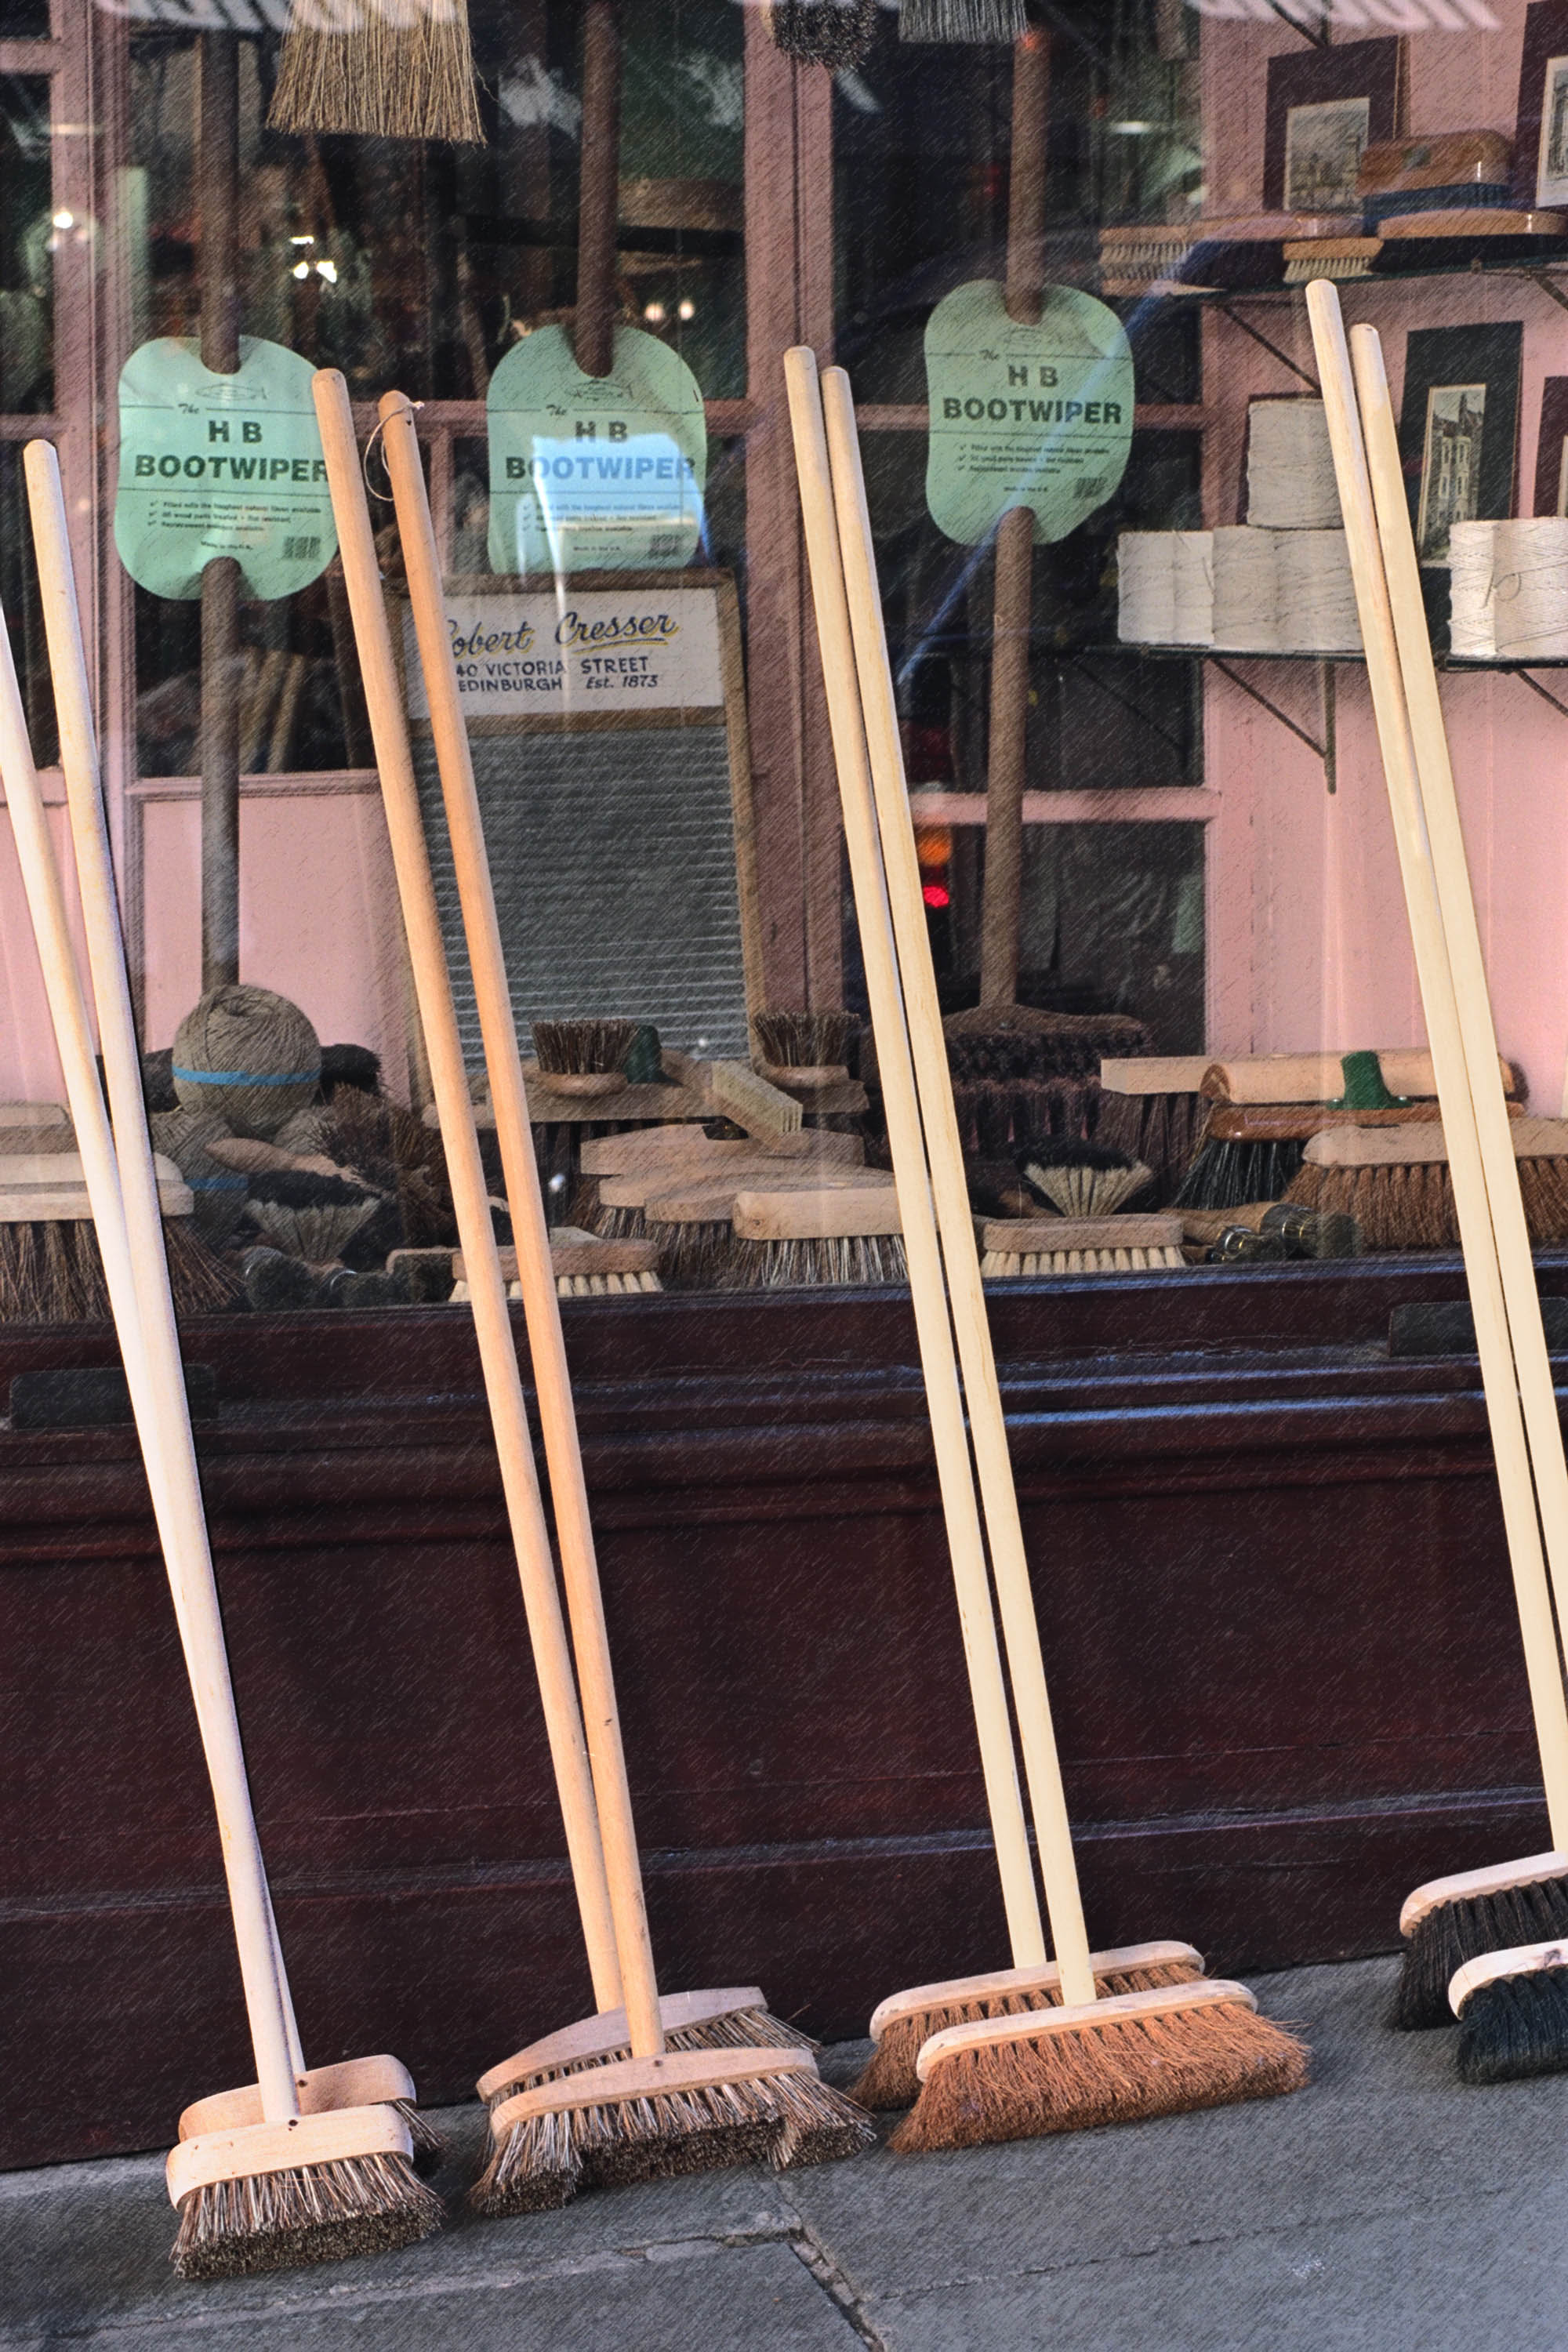 Brooms in front of store in Edinburgh, Scotland